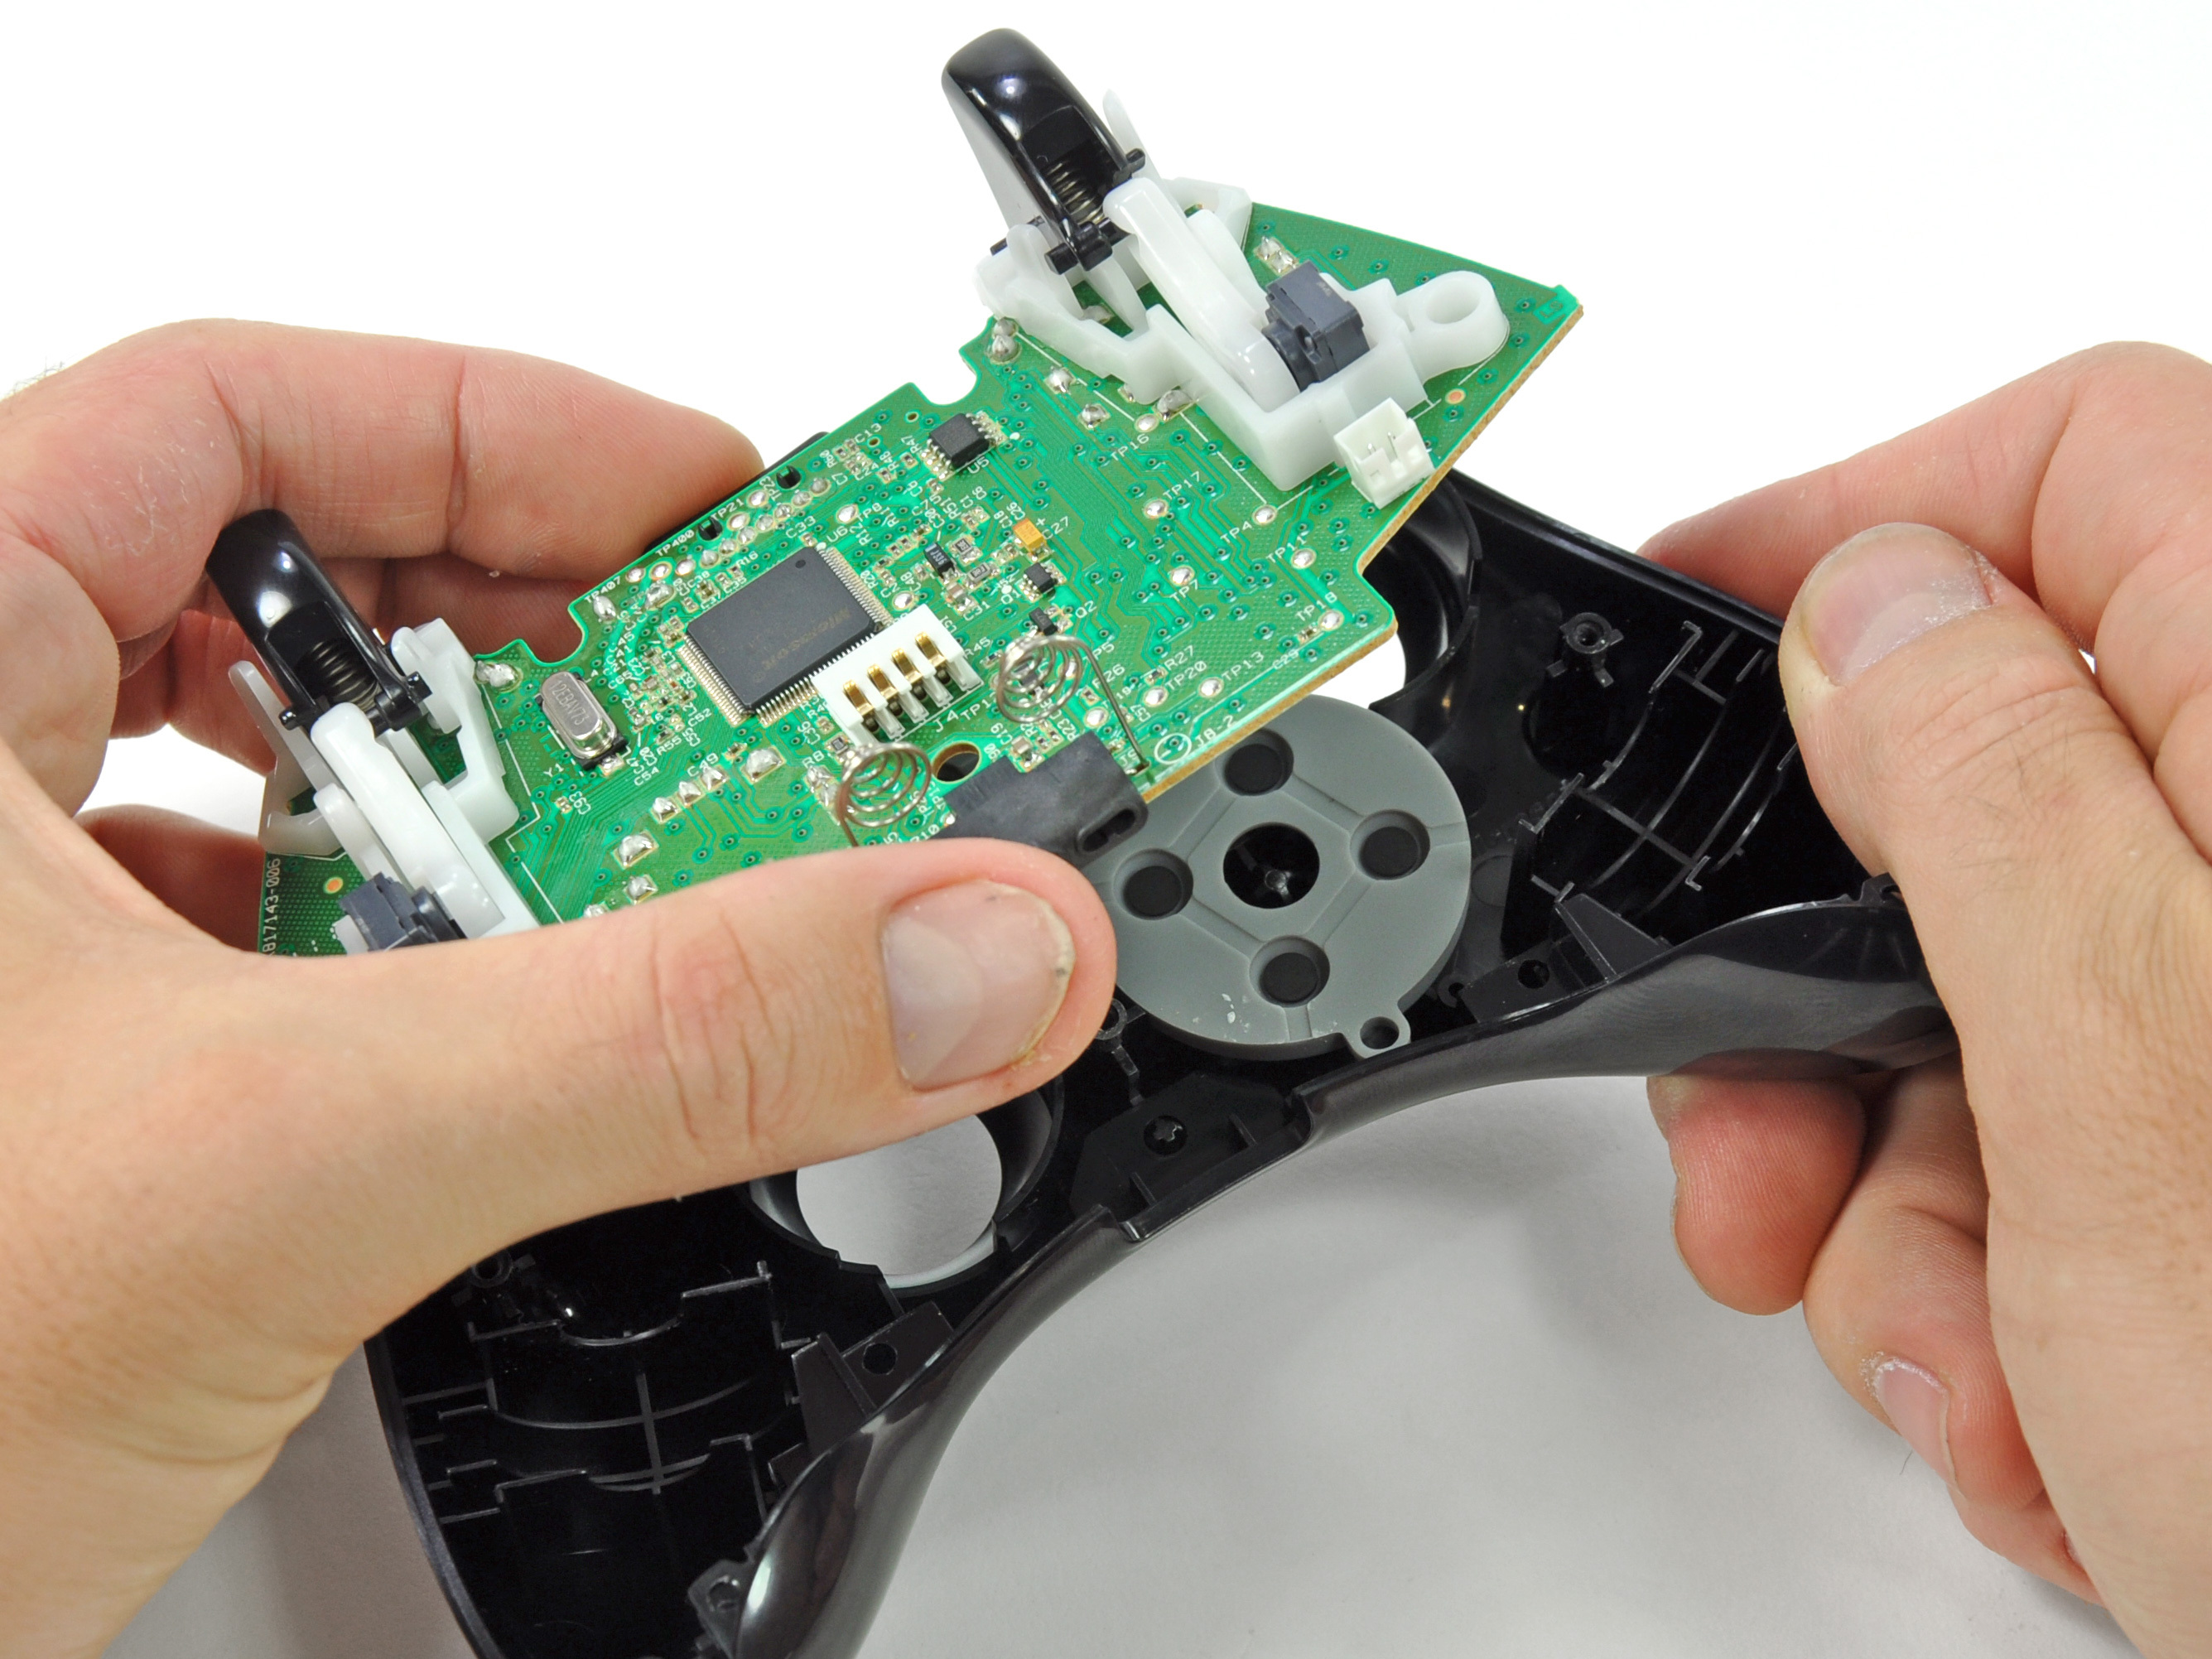 xbox 360 wireless controller repair ifixit xbox 360 controller dimensions xbox 360 wireless controller logic board replacement